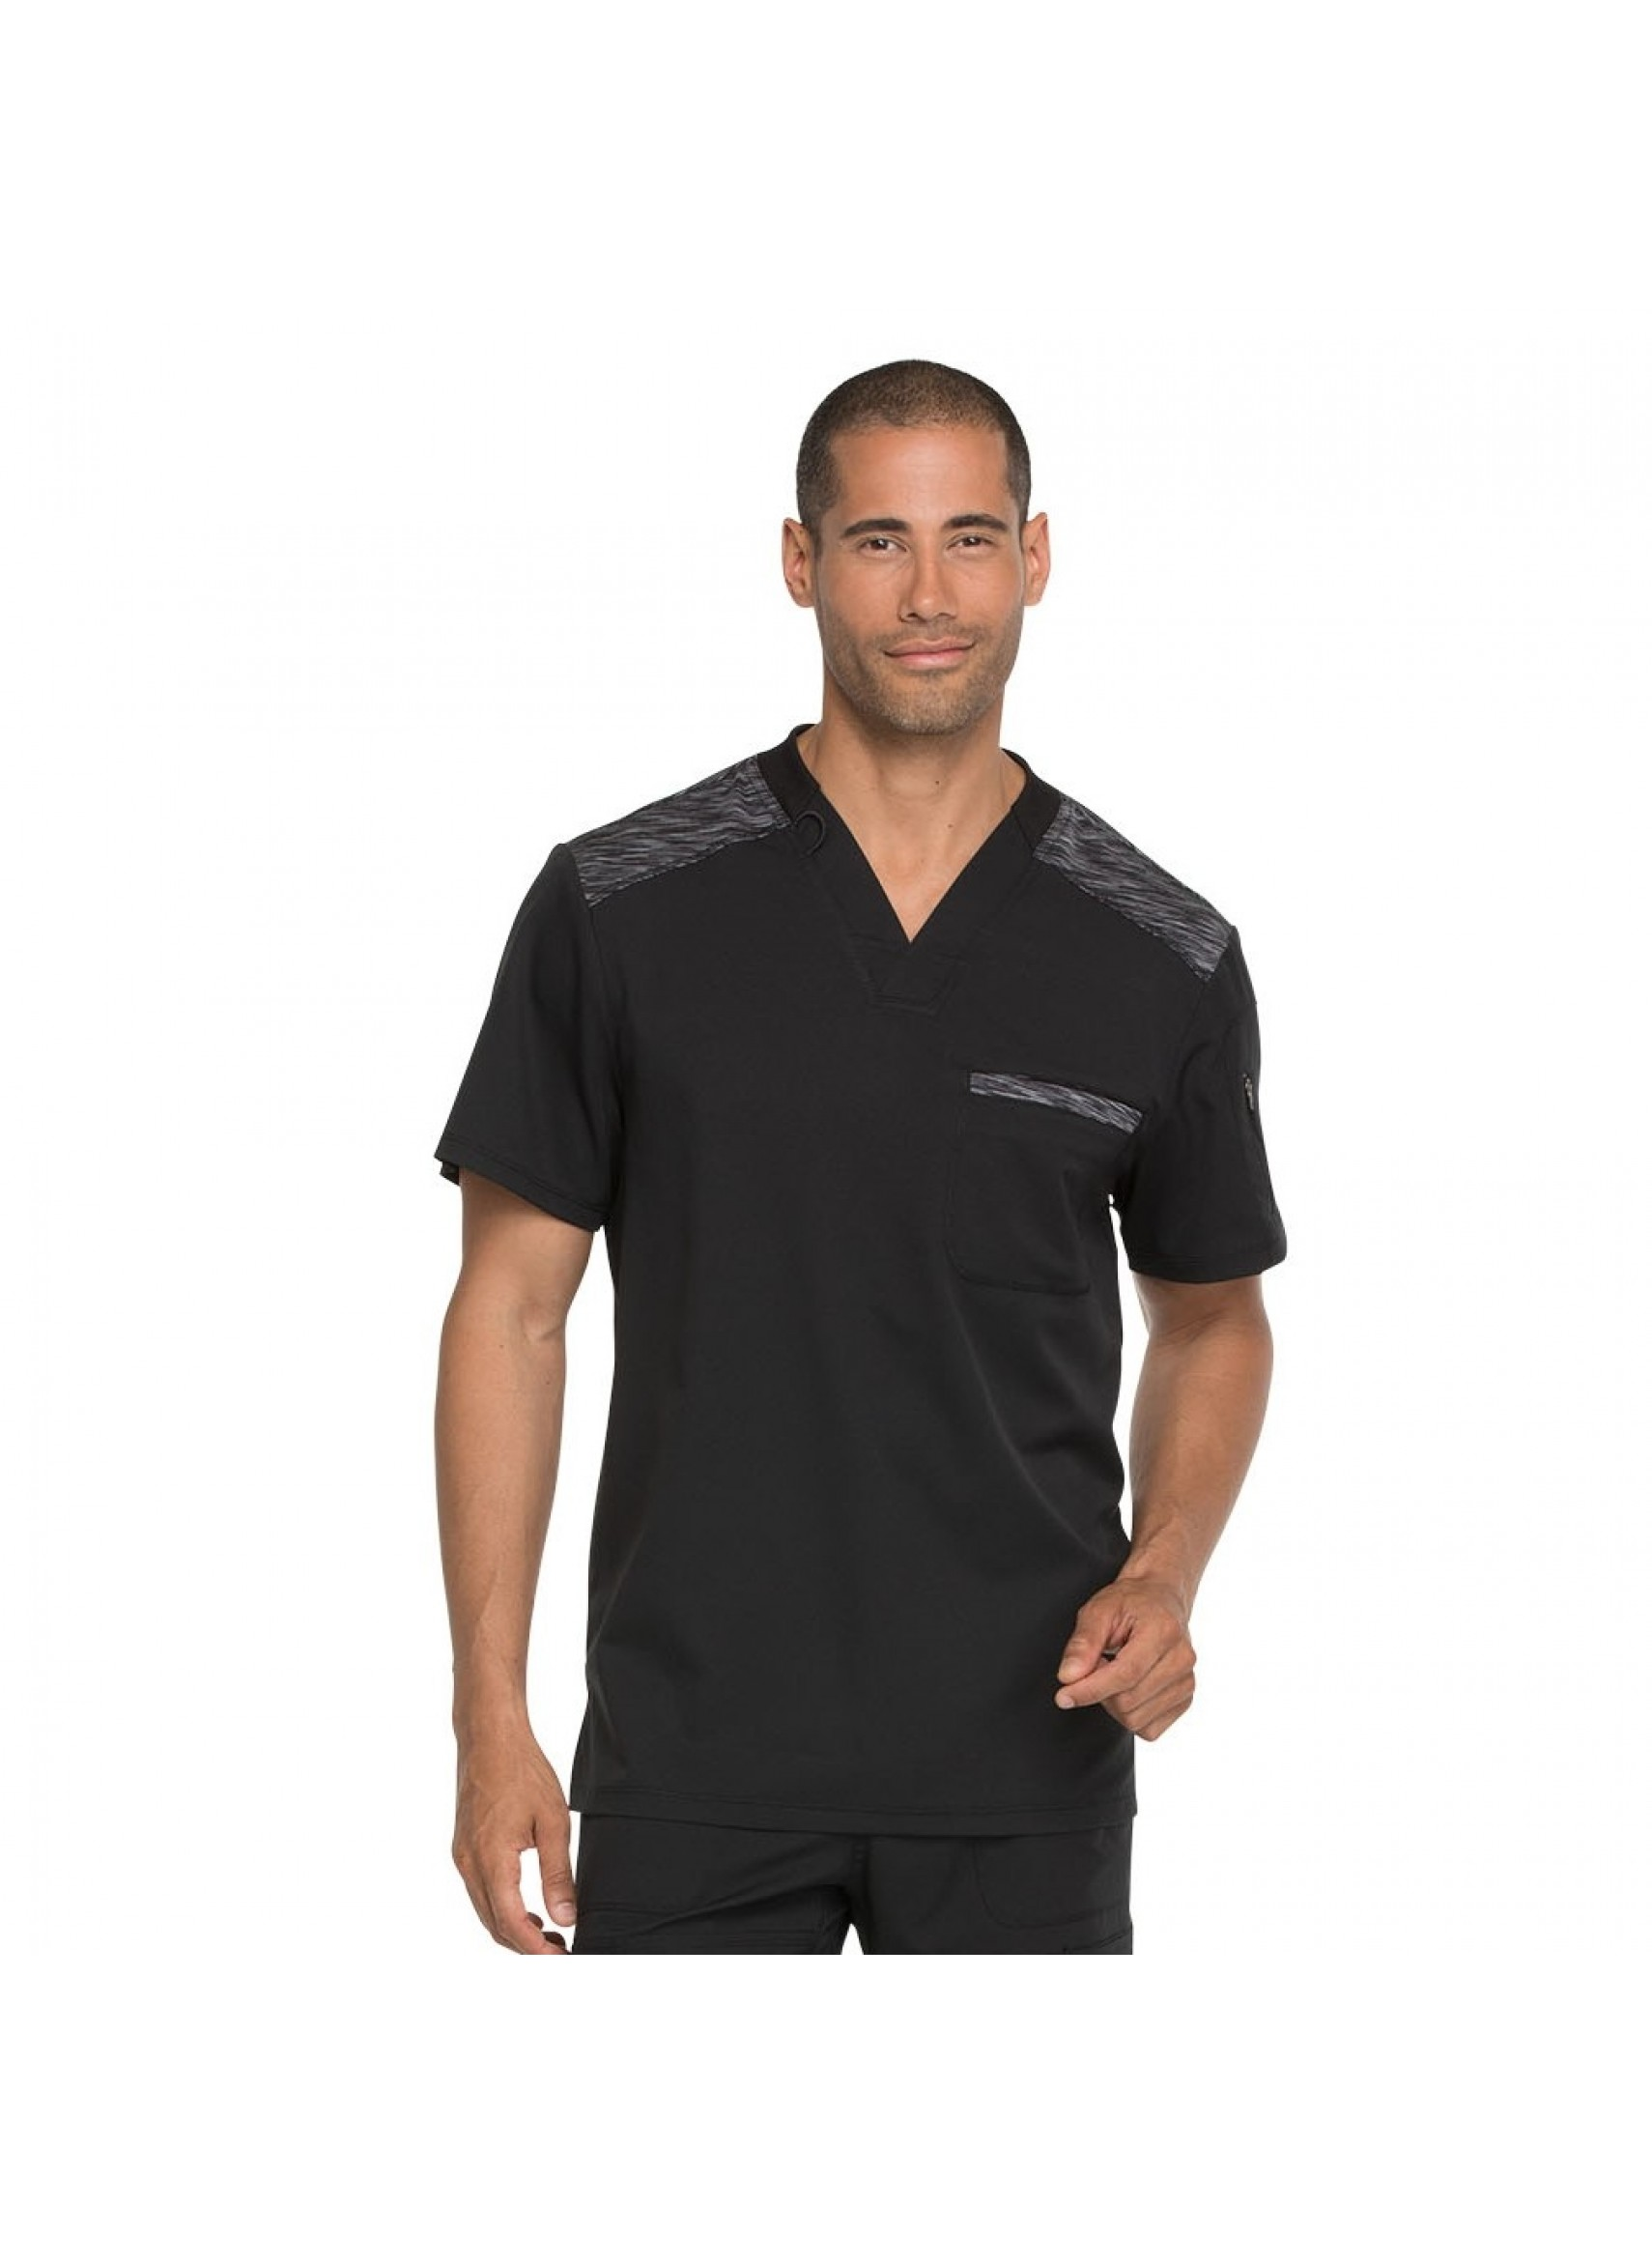 dd4ca55b62f 20% off all Dickies Scrubs! Use code DICKIES20 at checkout! Dickies Dynamix  Men's Contrast V-Neck Scrub Top ...